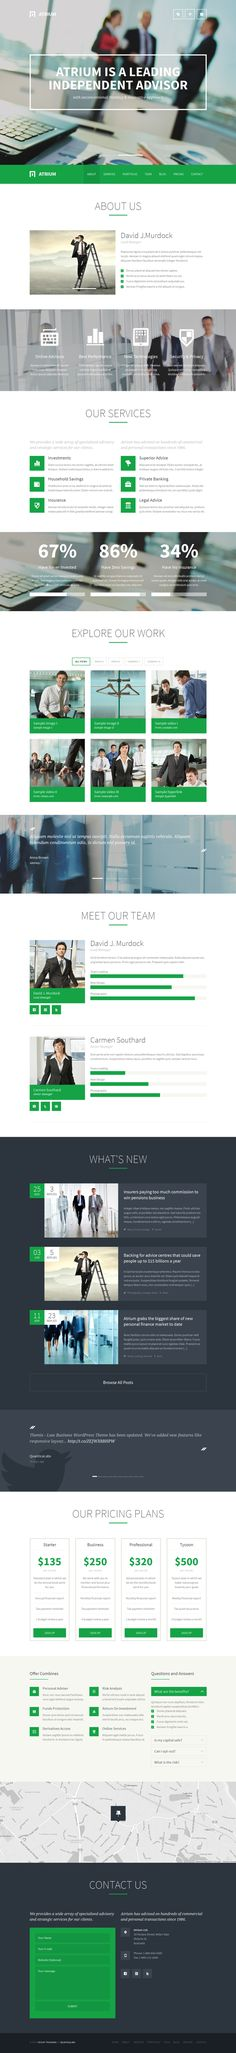 Atrium - Responsive Corporate One Page Template on the Adweek Talent Gallery